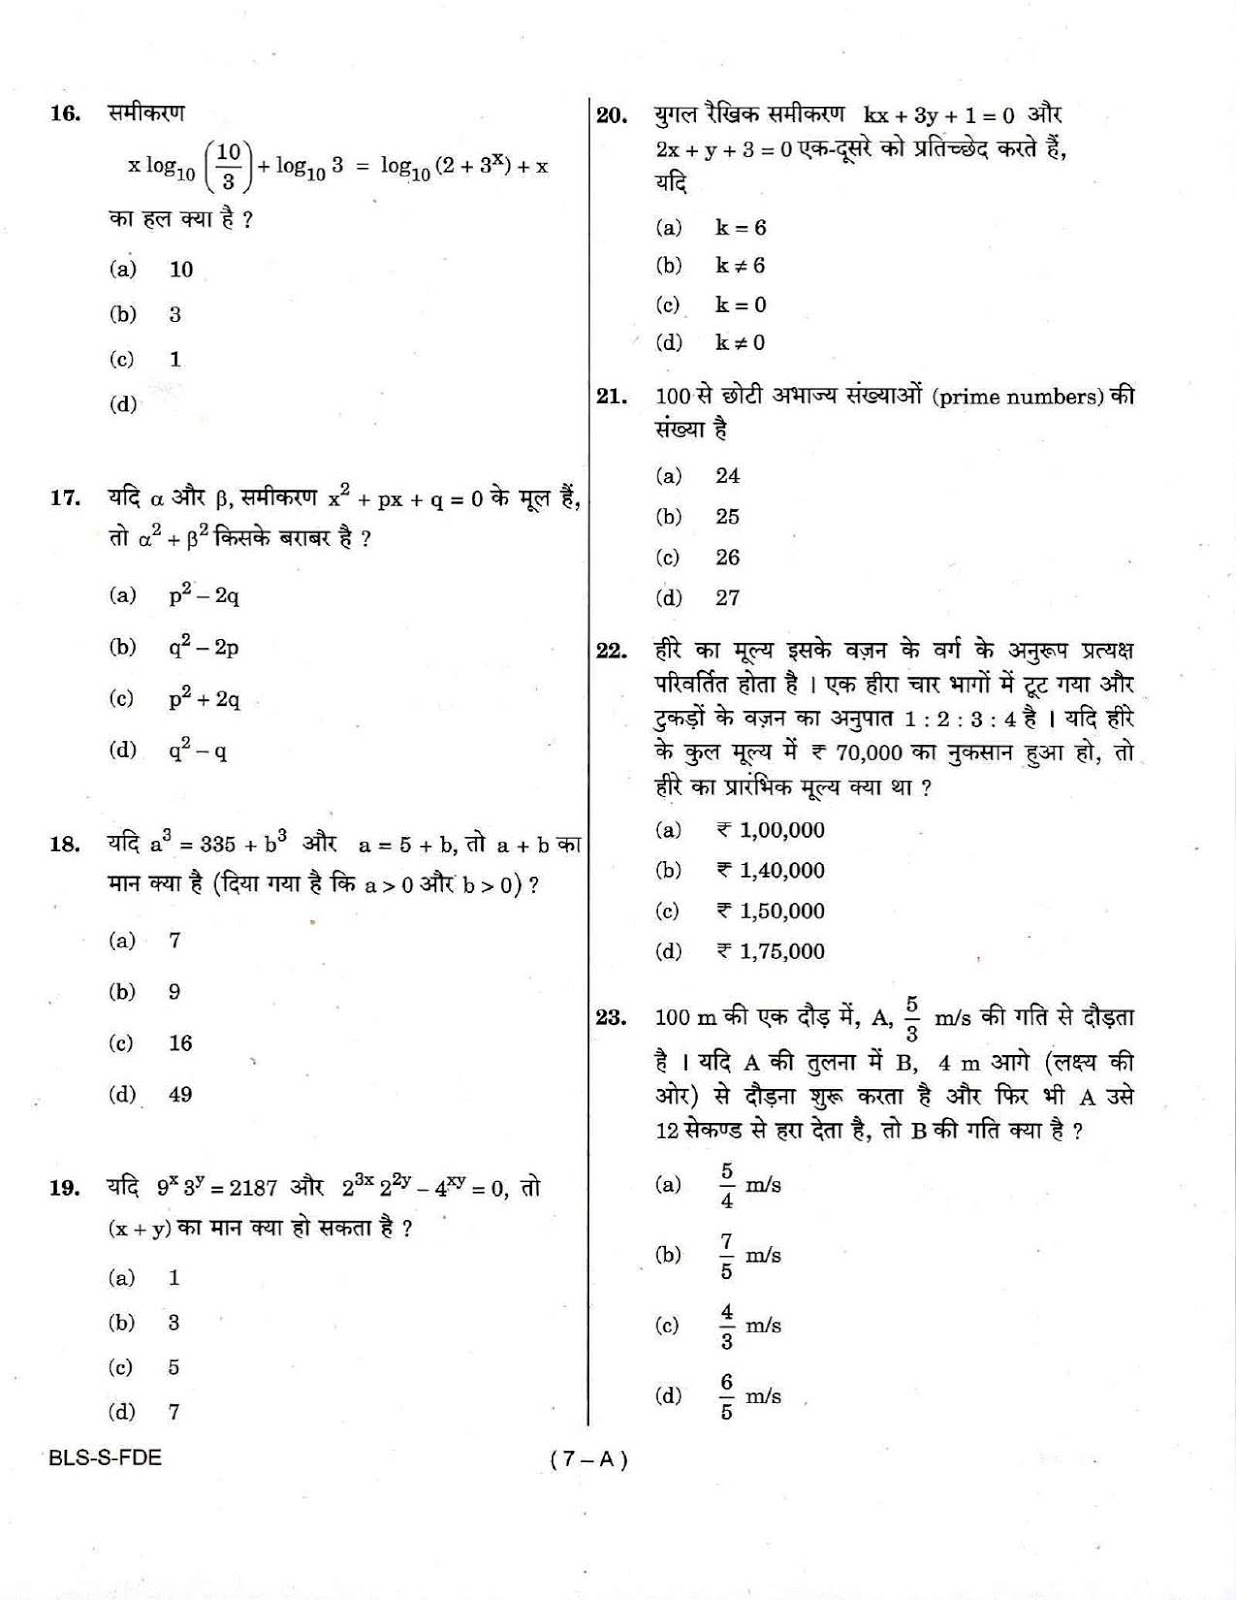 UPSC CDS I 2017 Mathematics question paper